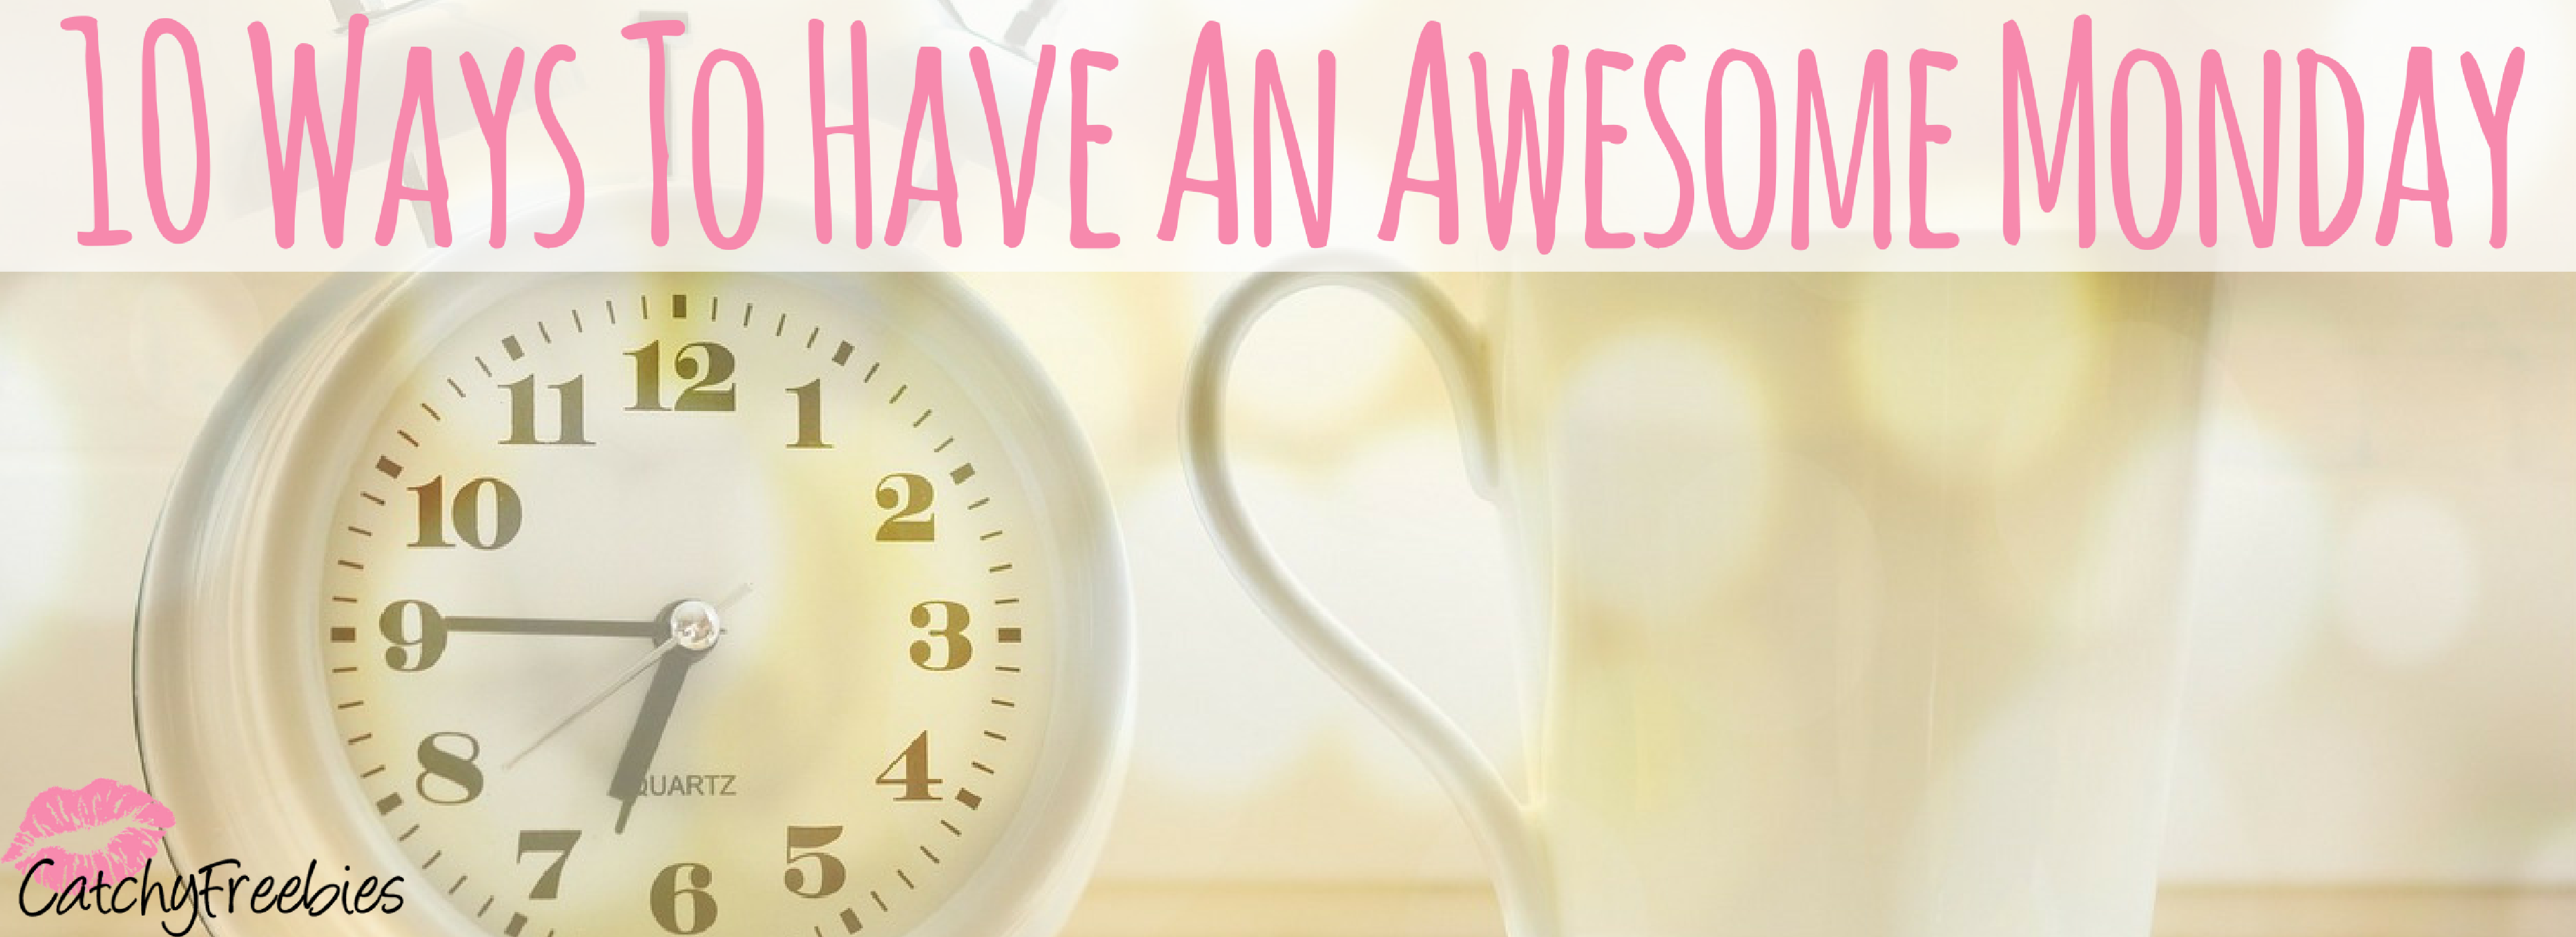 10 Ways To Have An Awesome Monday